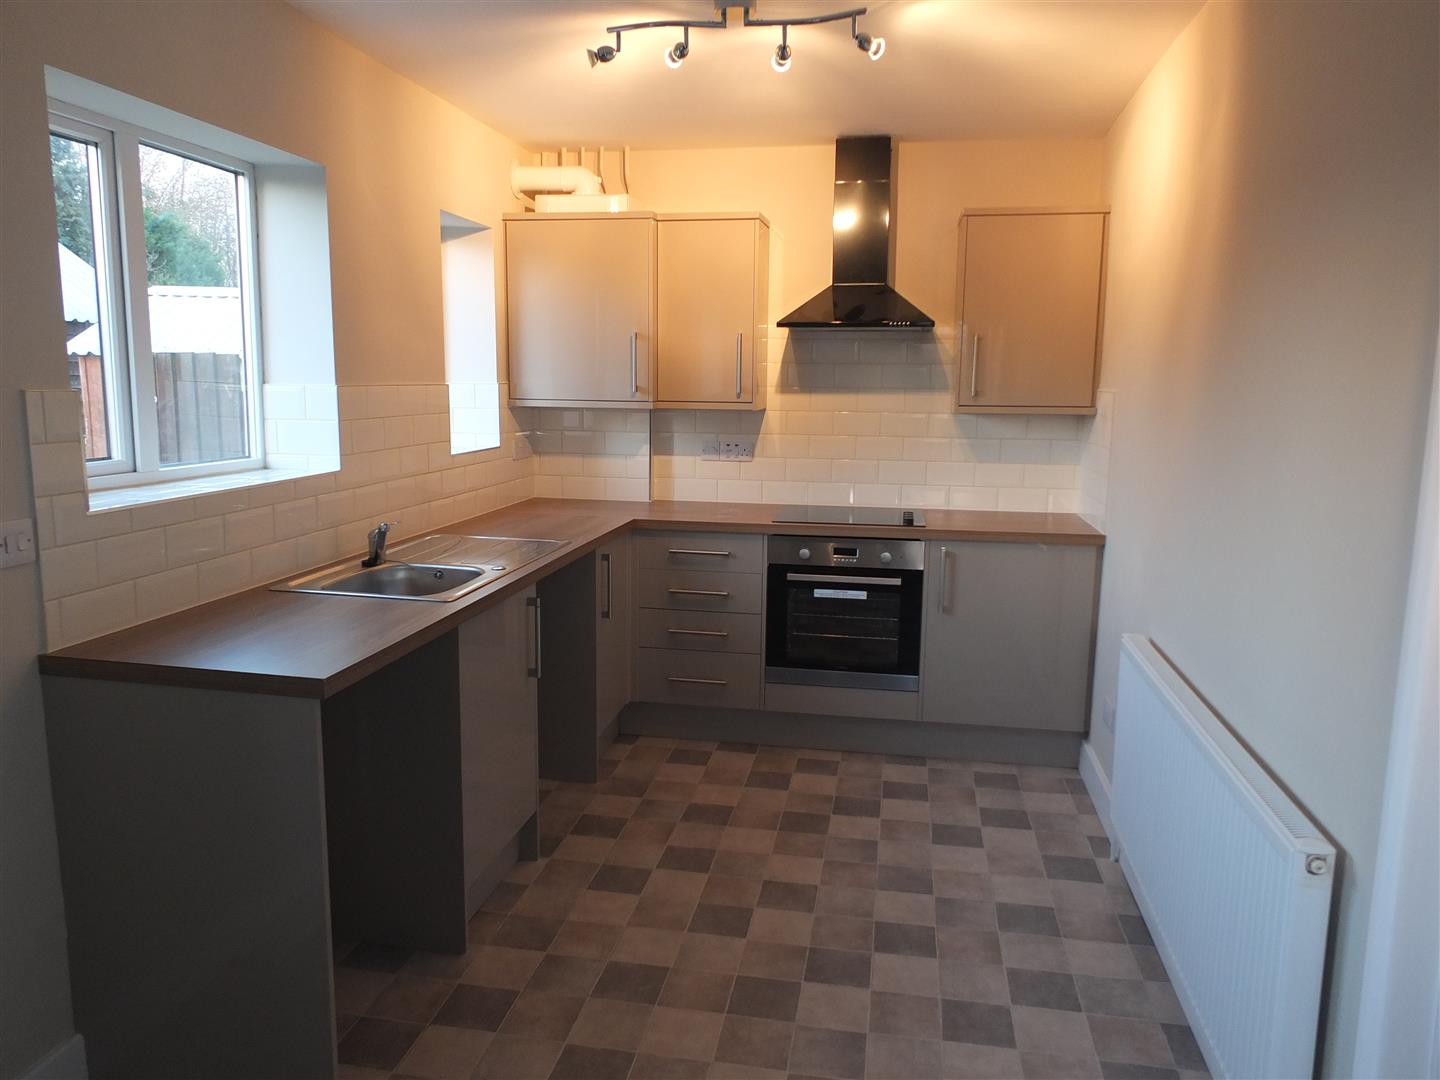 3 bed semi-detached house to rent in Long Sutton Spalding, PE12 9BT  - Property Image 2